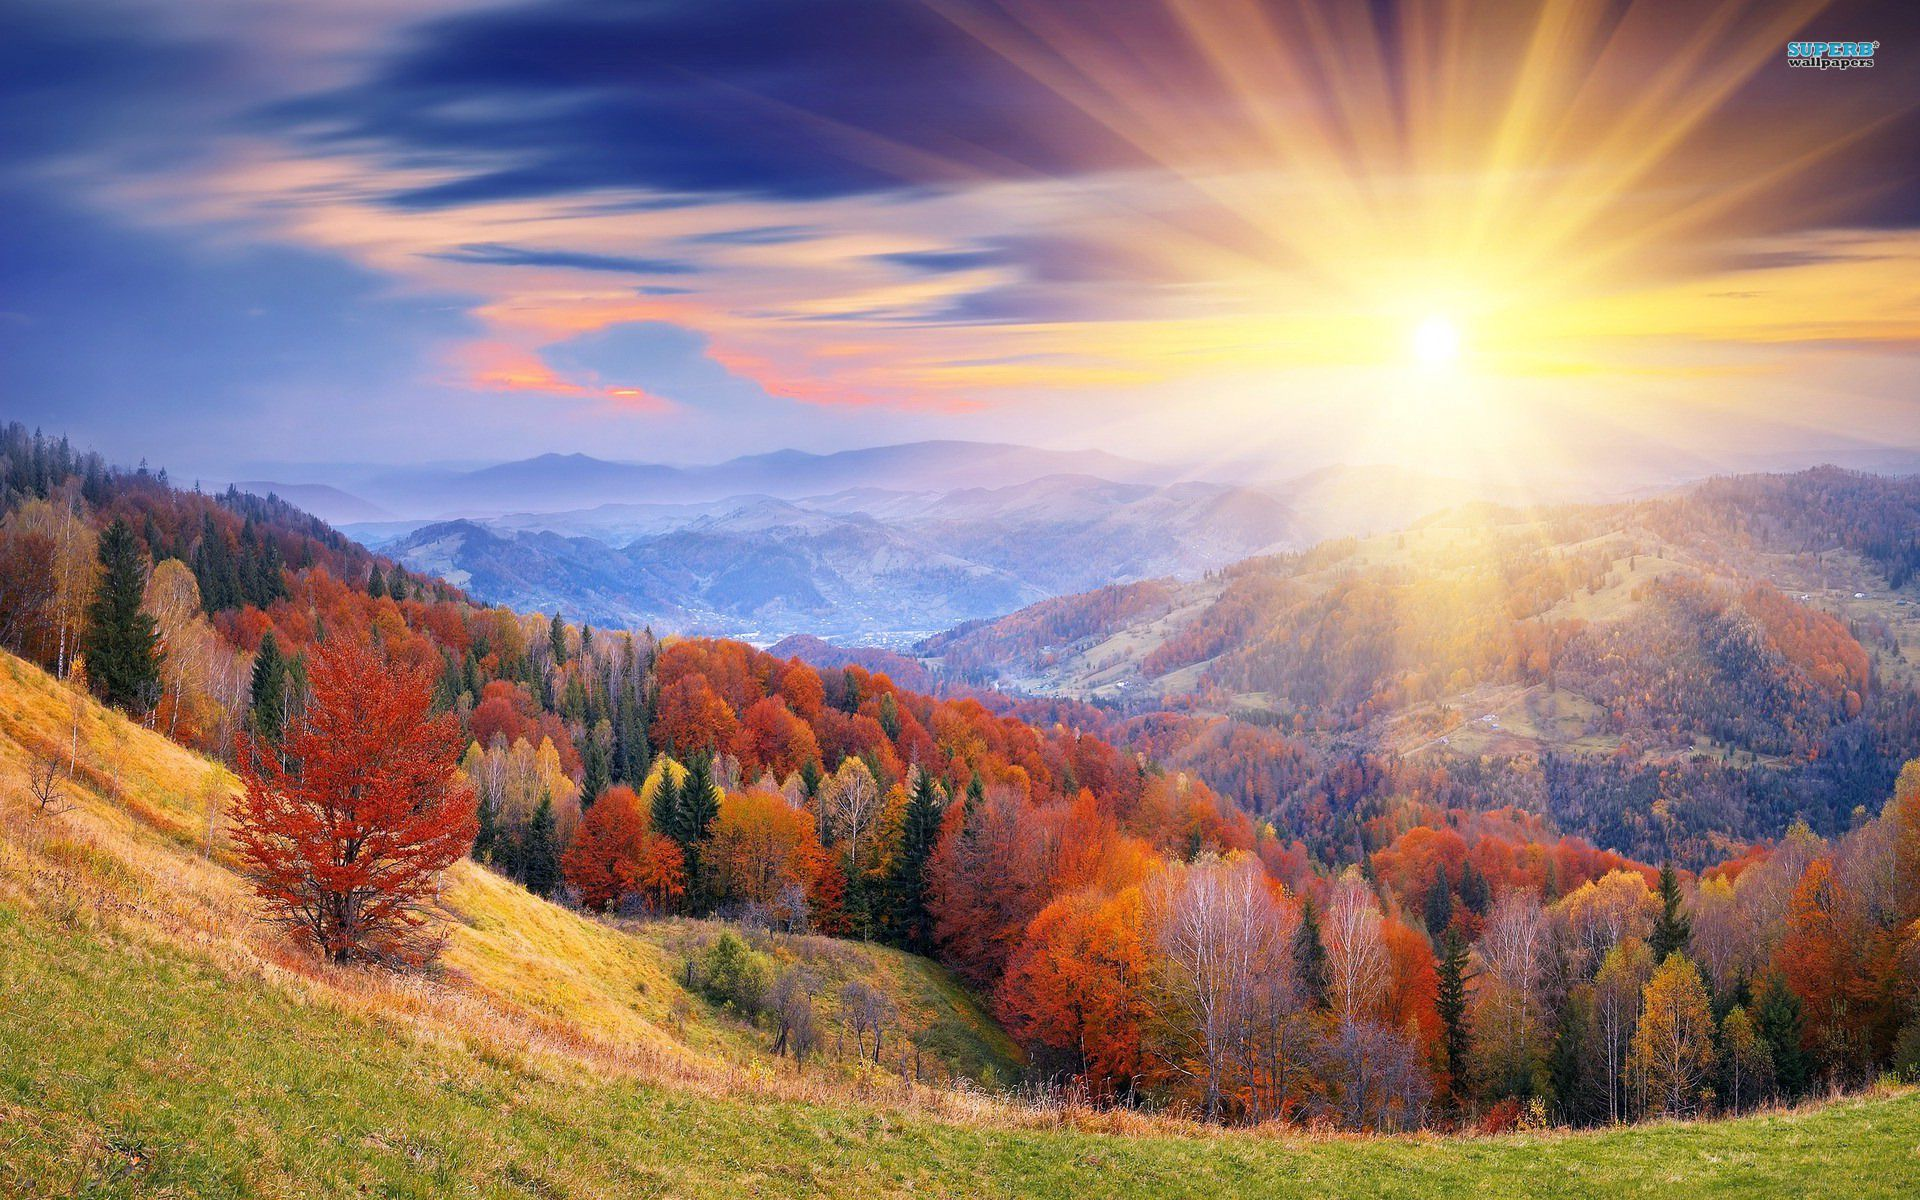 Mountain Sunrise Wallpaper High Quality Is 4k Wallpaper Beautiful Nature Wallpaper Sunrise Wallpaper Beautiful Nature